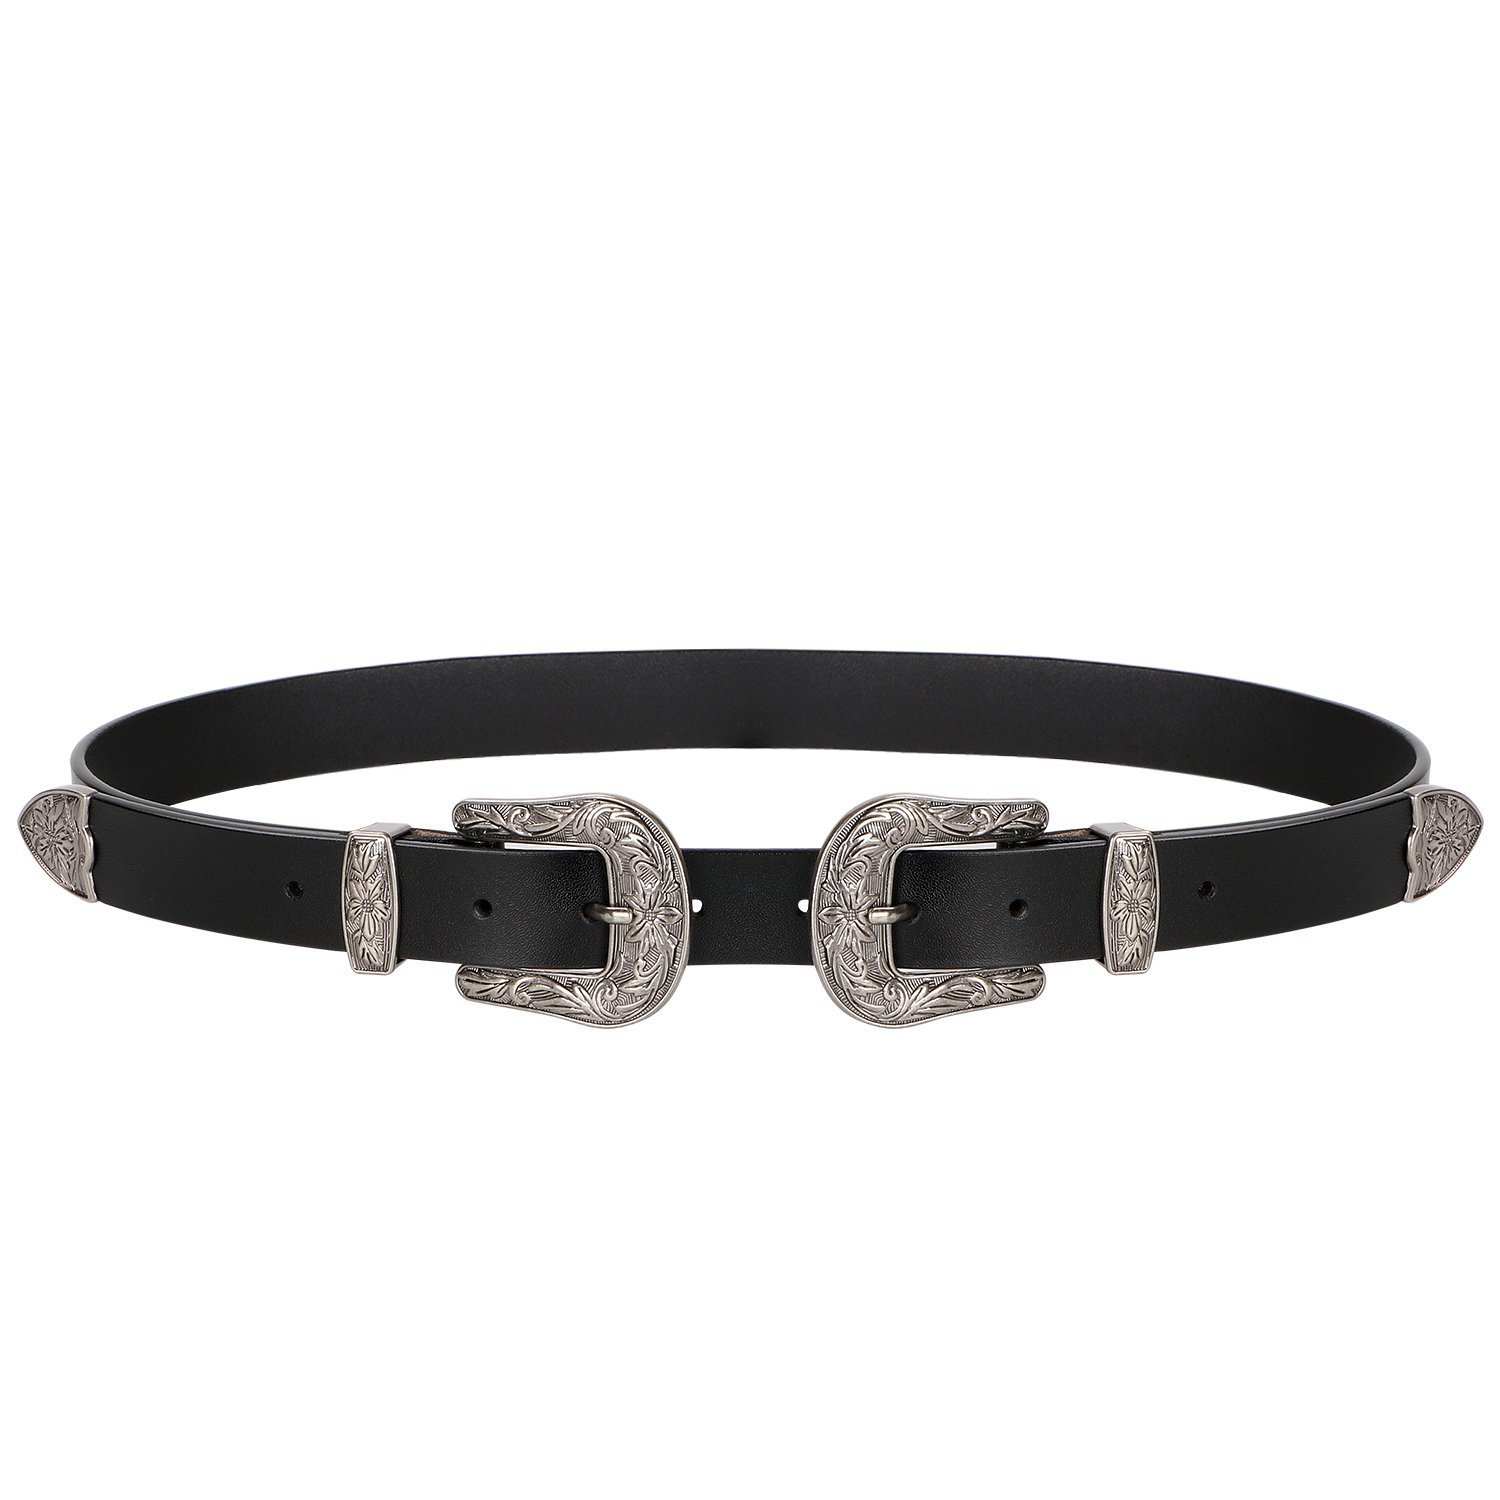 Women Leather Belt Black Ladies Vintage Jeans Belts Leather with Double Solid Buckles Fits 28''-34'' Waist Belt Black